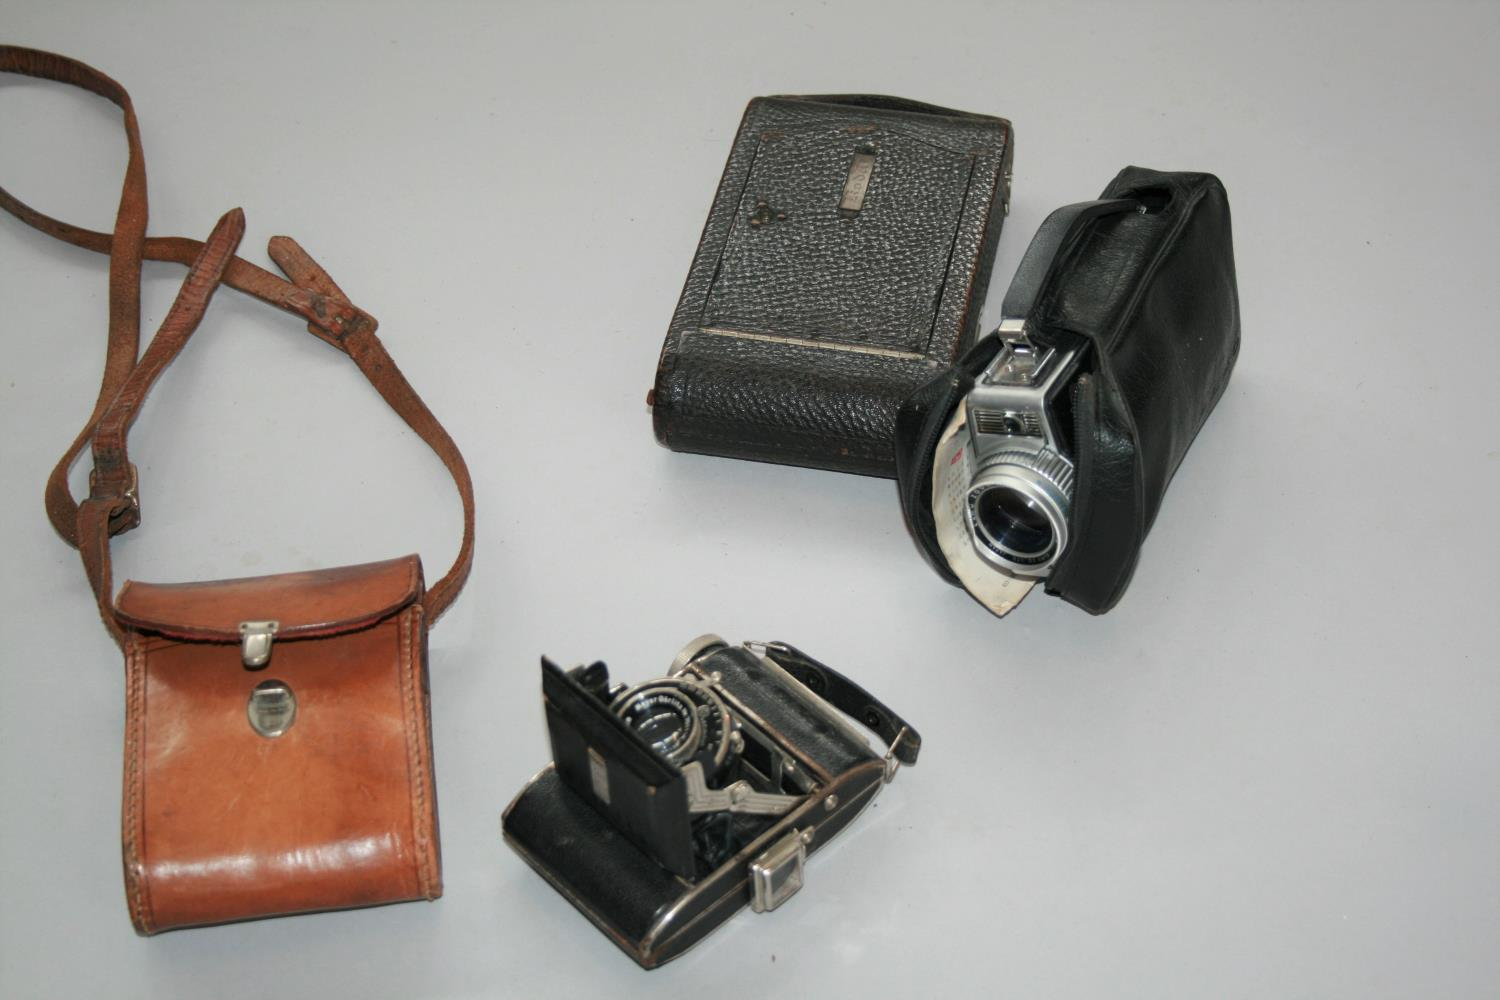 Antique walnut and brass stationary holder, vintage cameras, weighing scales and weights. - Image 2 of 3